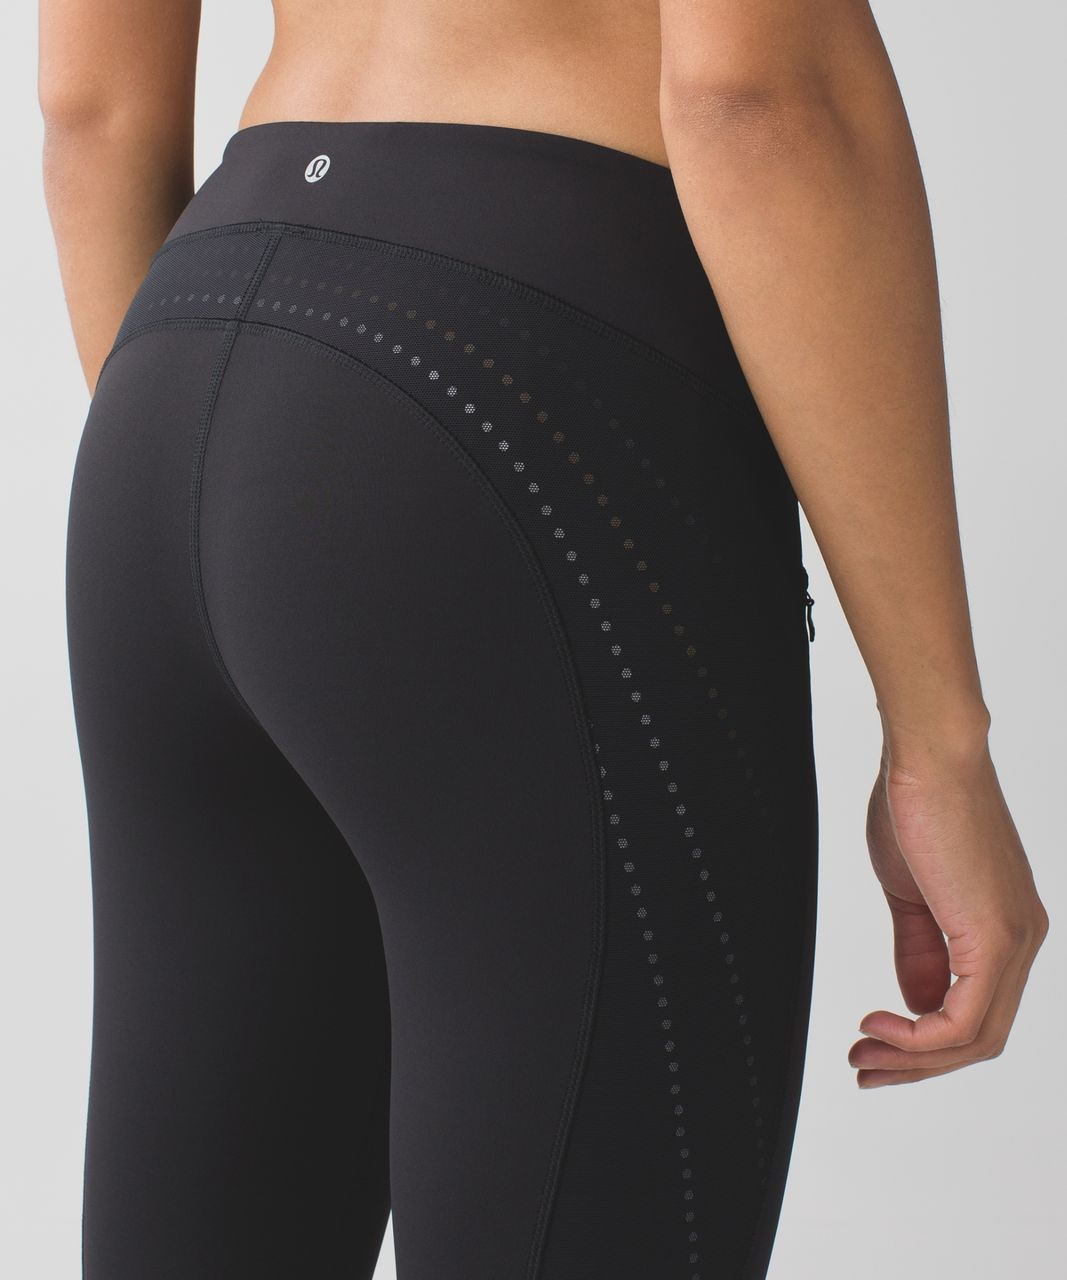 Lululemon Stop At Nothing Crop - Black